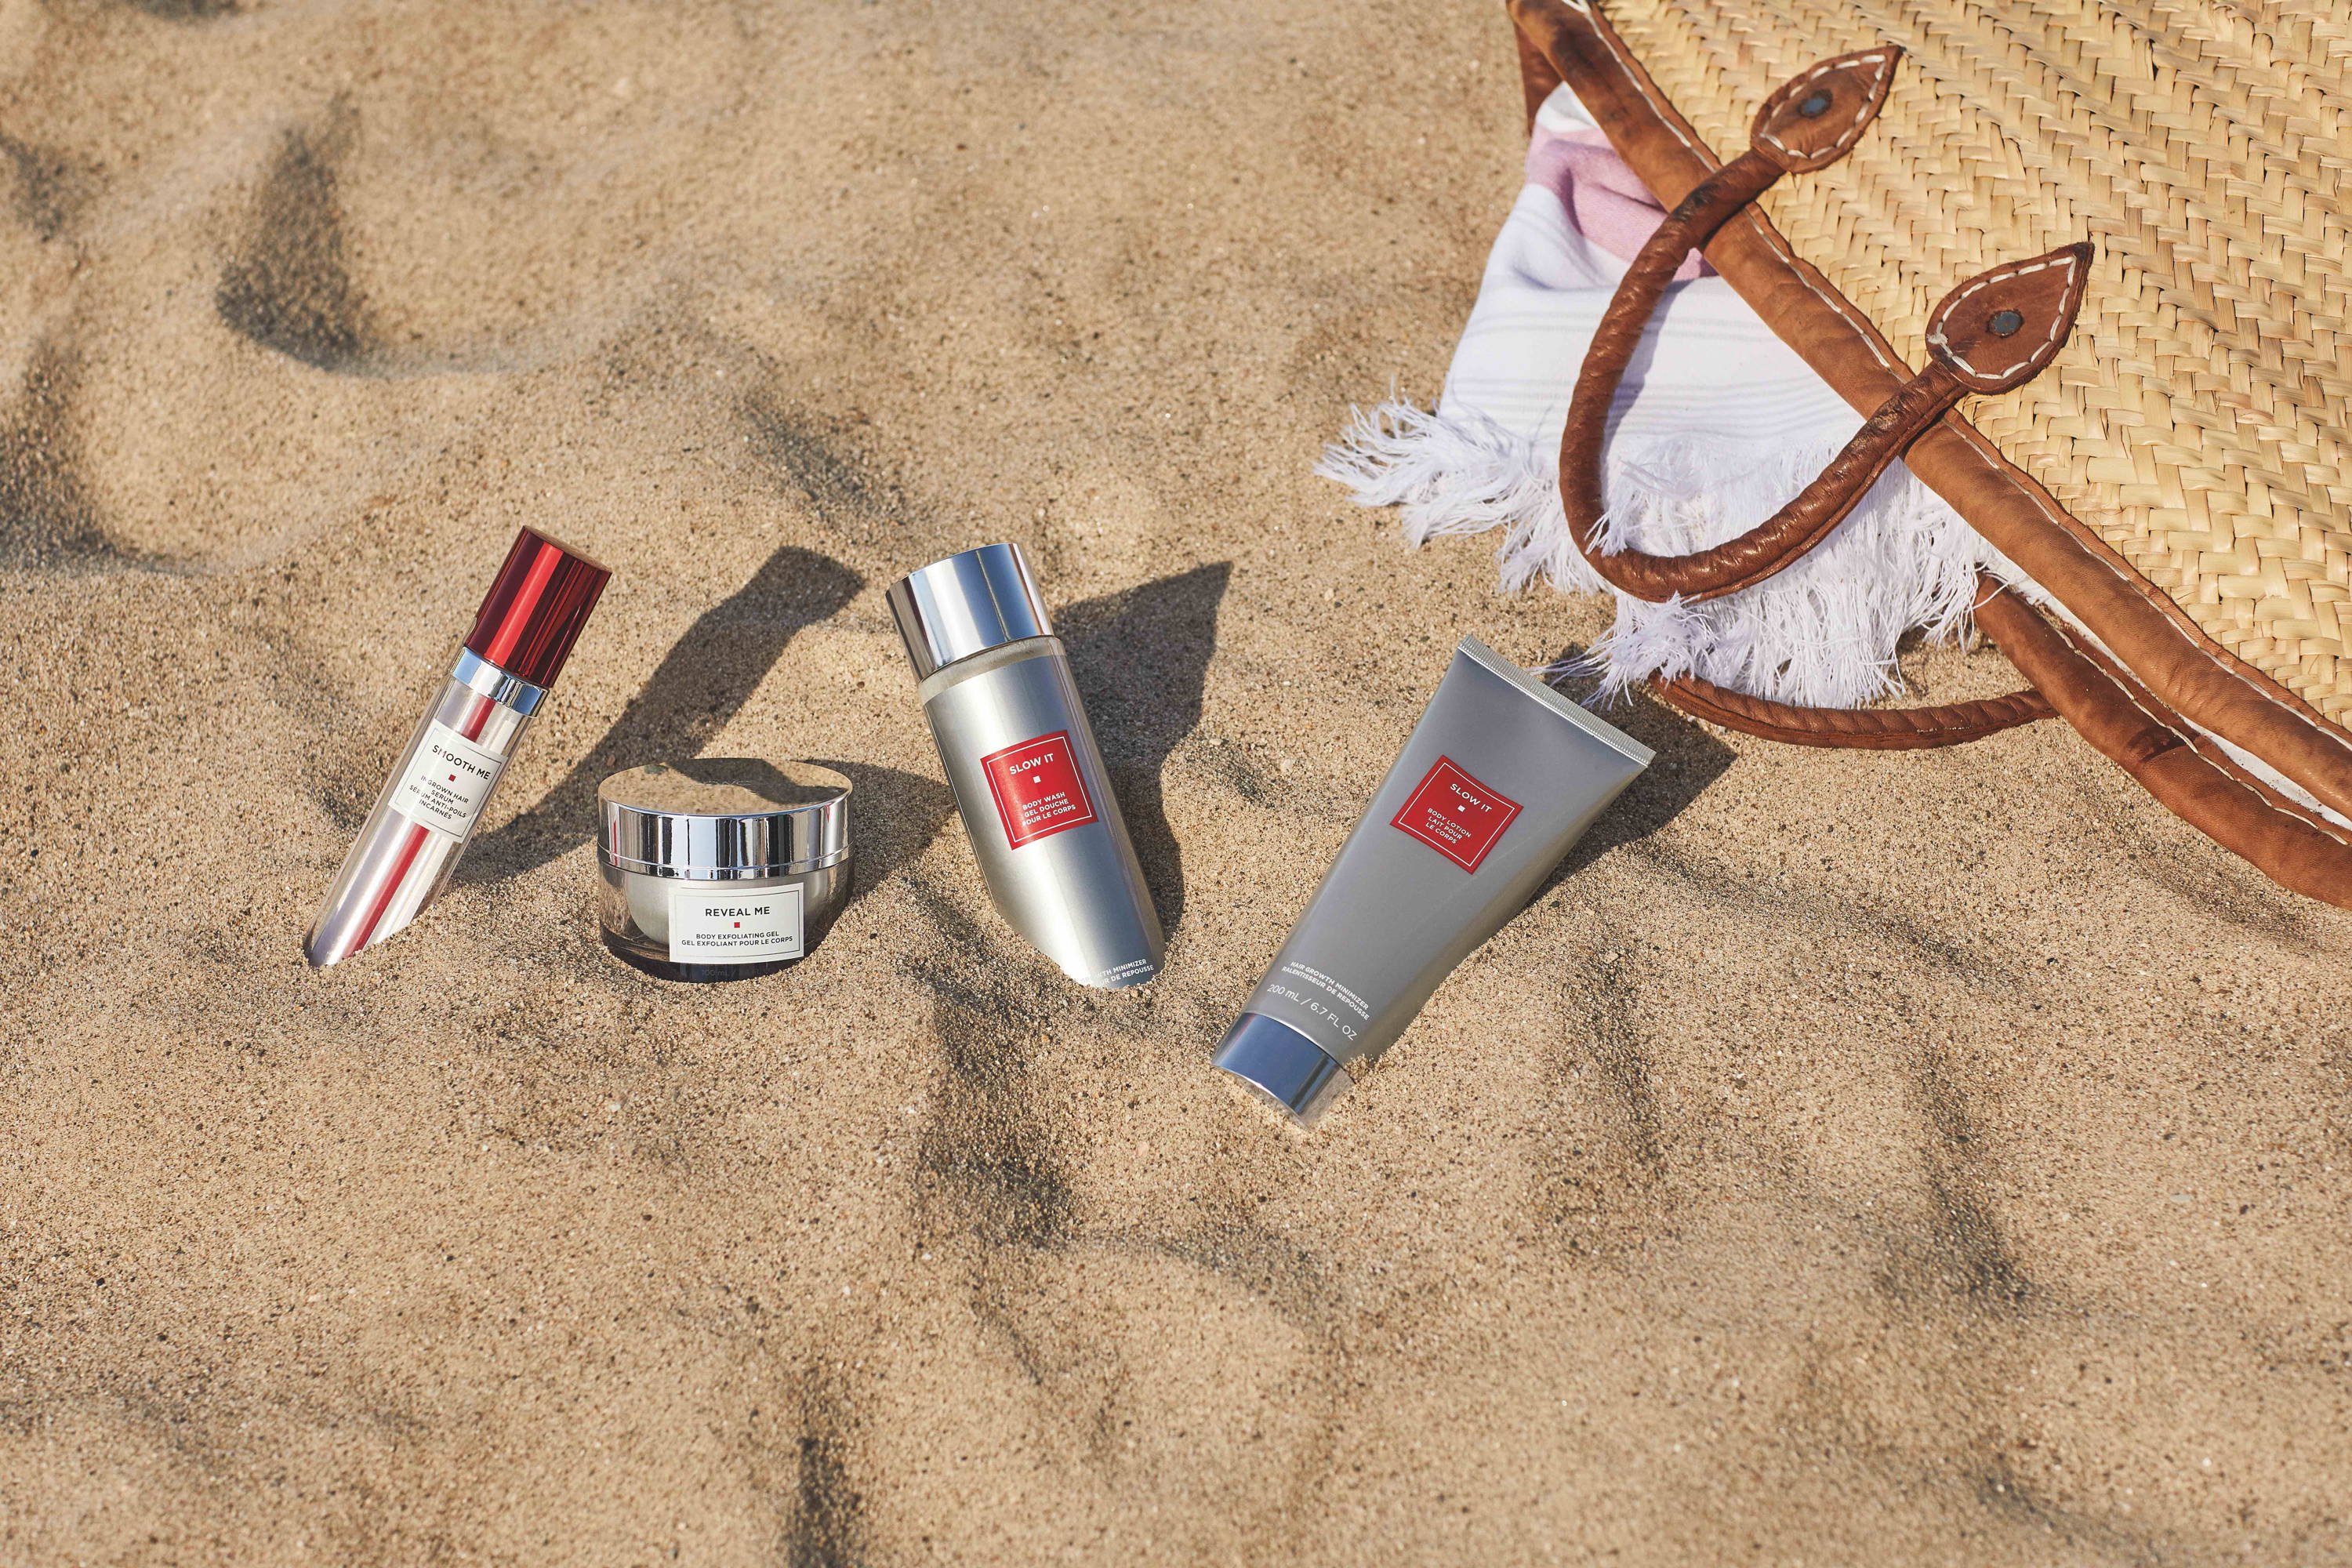 Strut Smoothly® Skincare products for ingrown hairs, exfoliate, and lotion in the sand